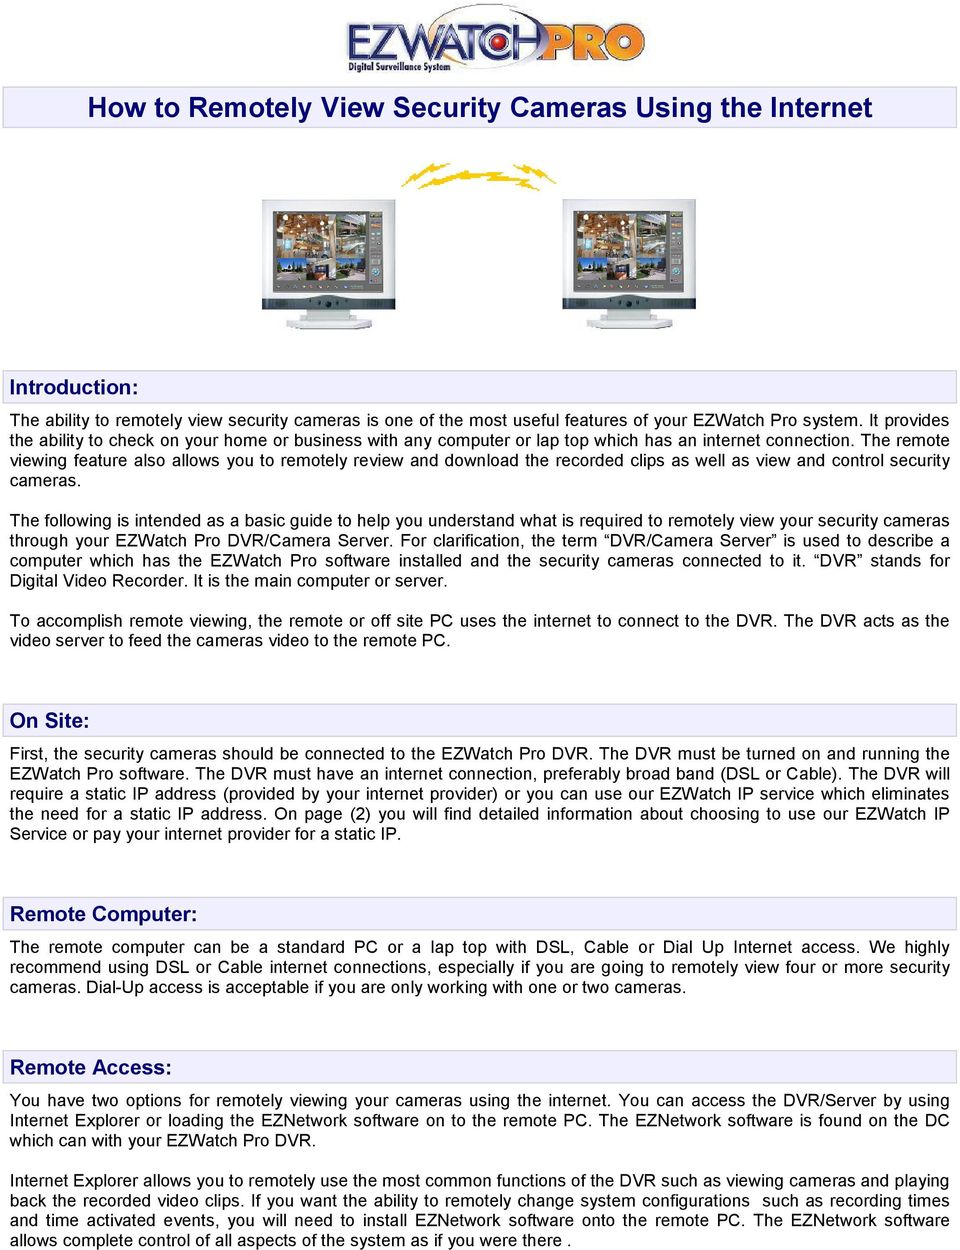 How to Remotely View Security Cameras Using the Internet - PDF